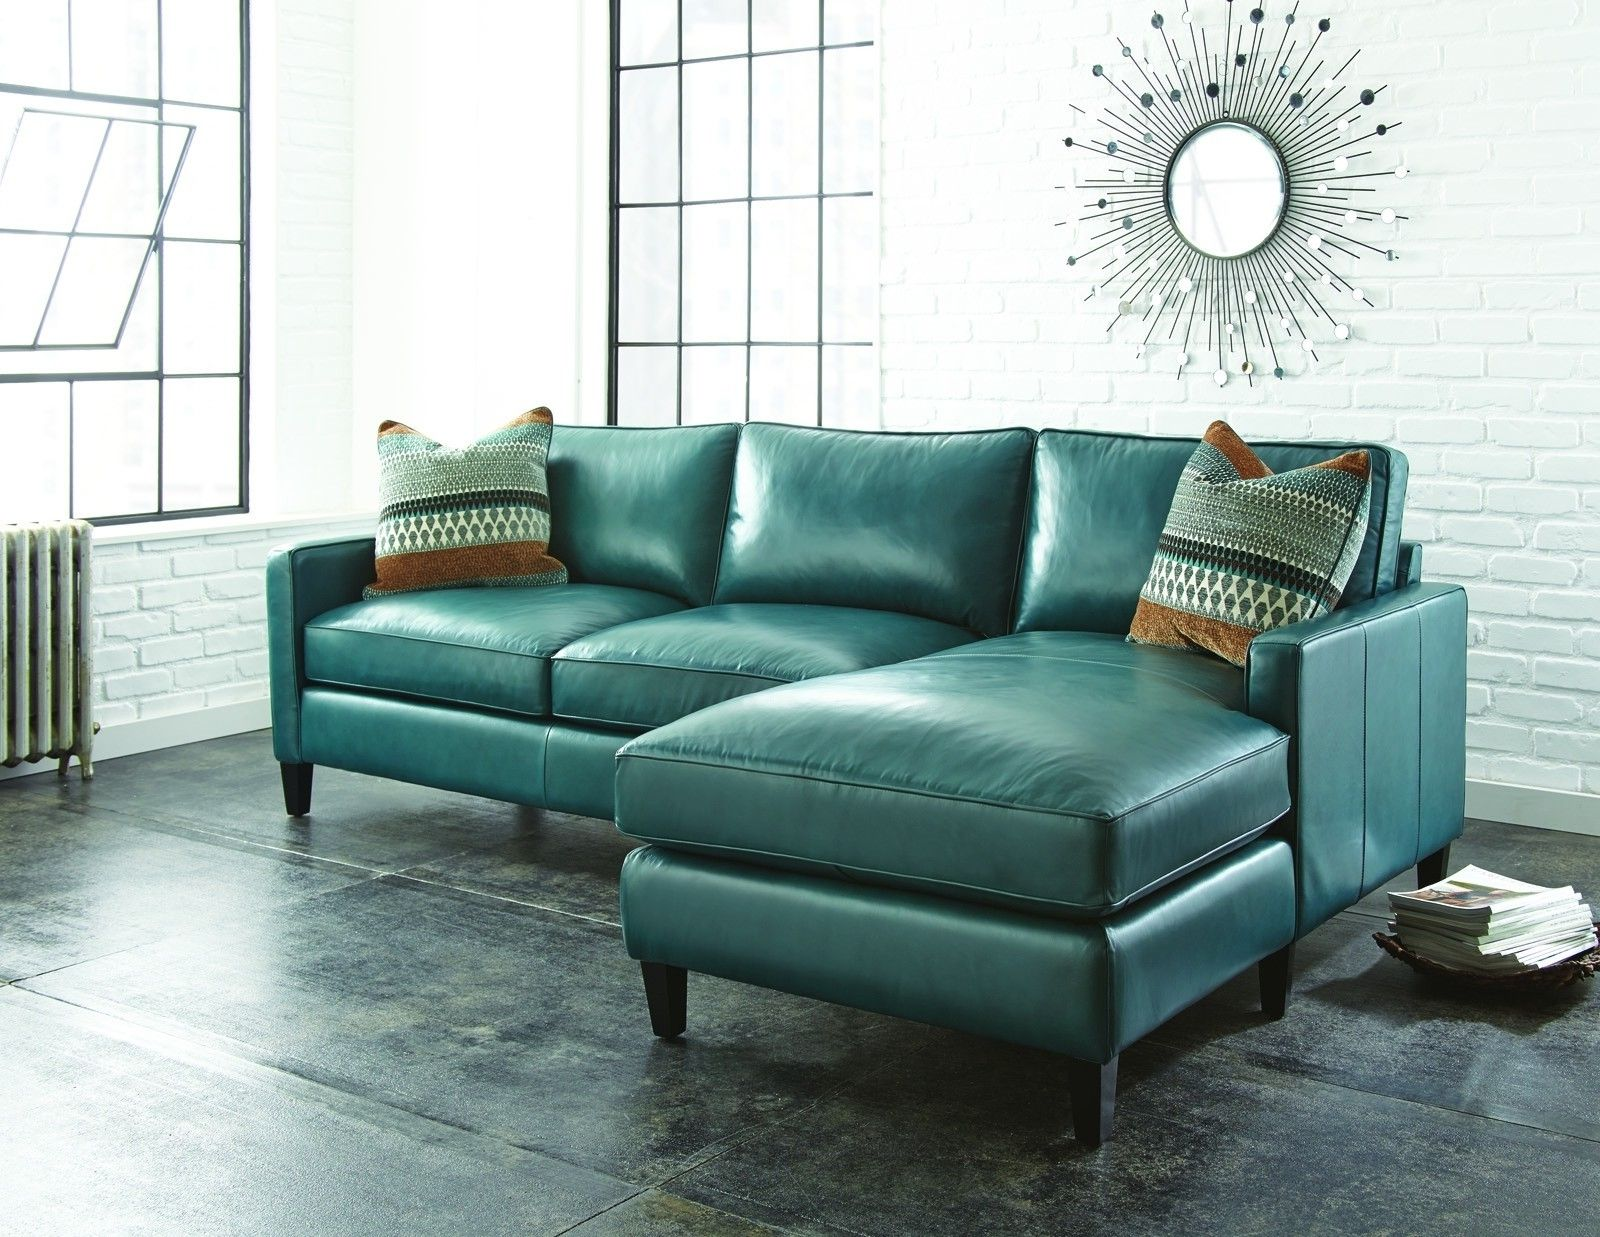 Teal Leather Sectional Sofa With